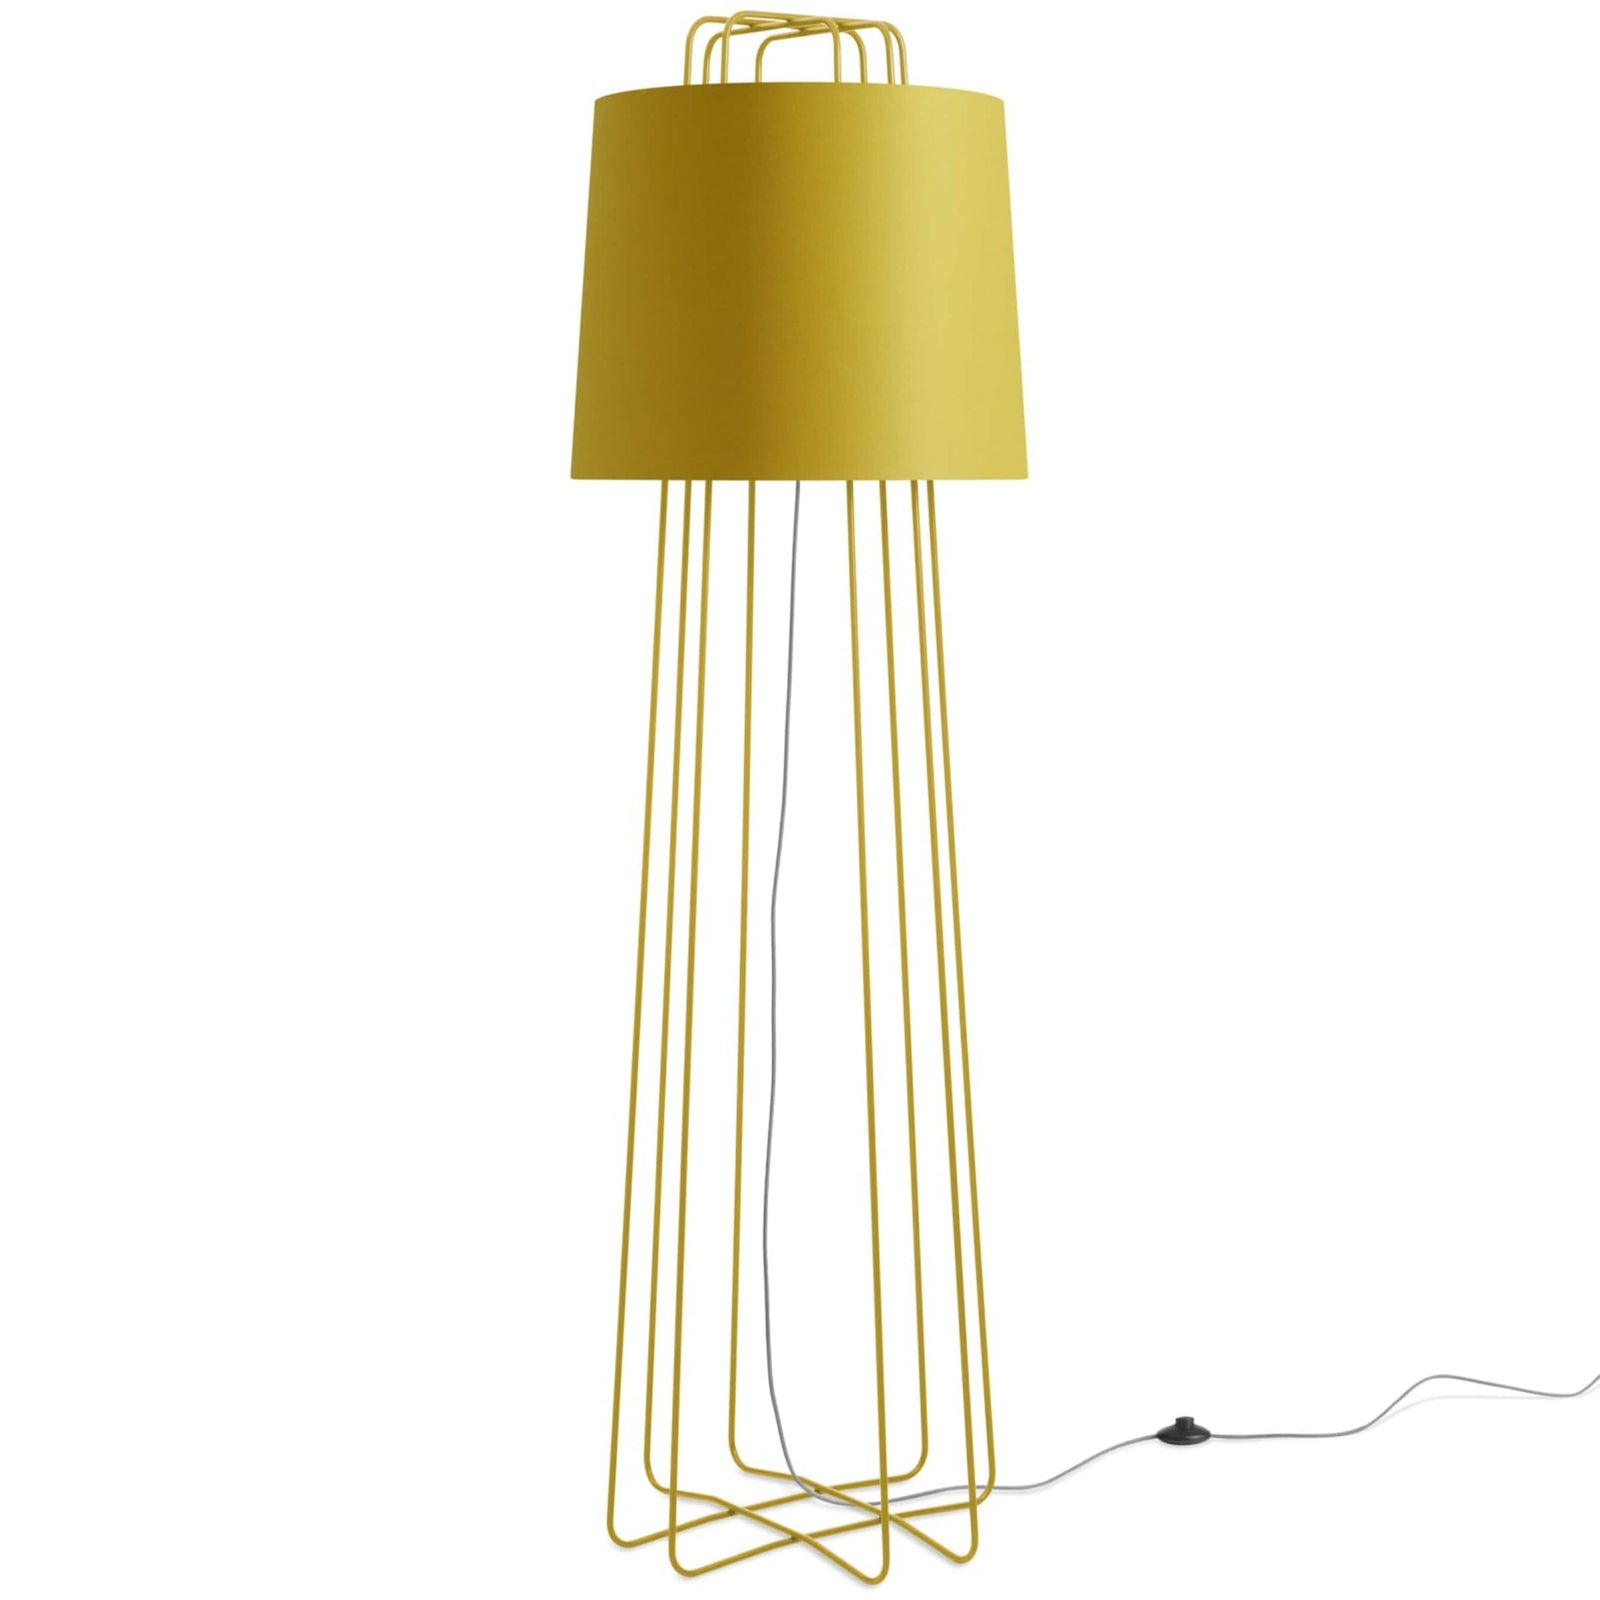 Blu Dot Lighting Ochre Perimeter Floor Lamp